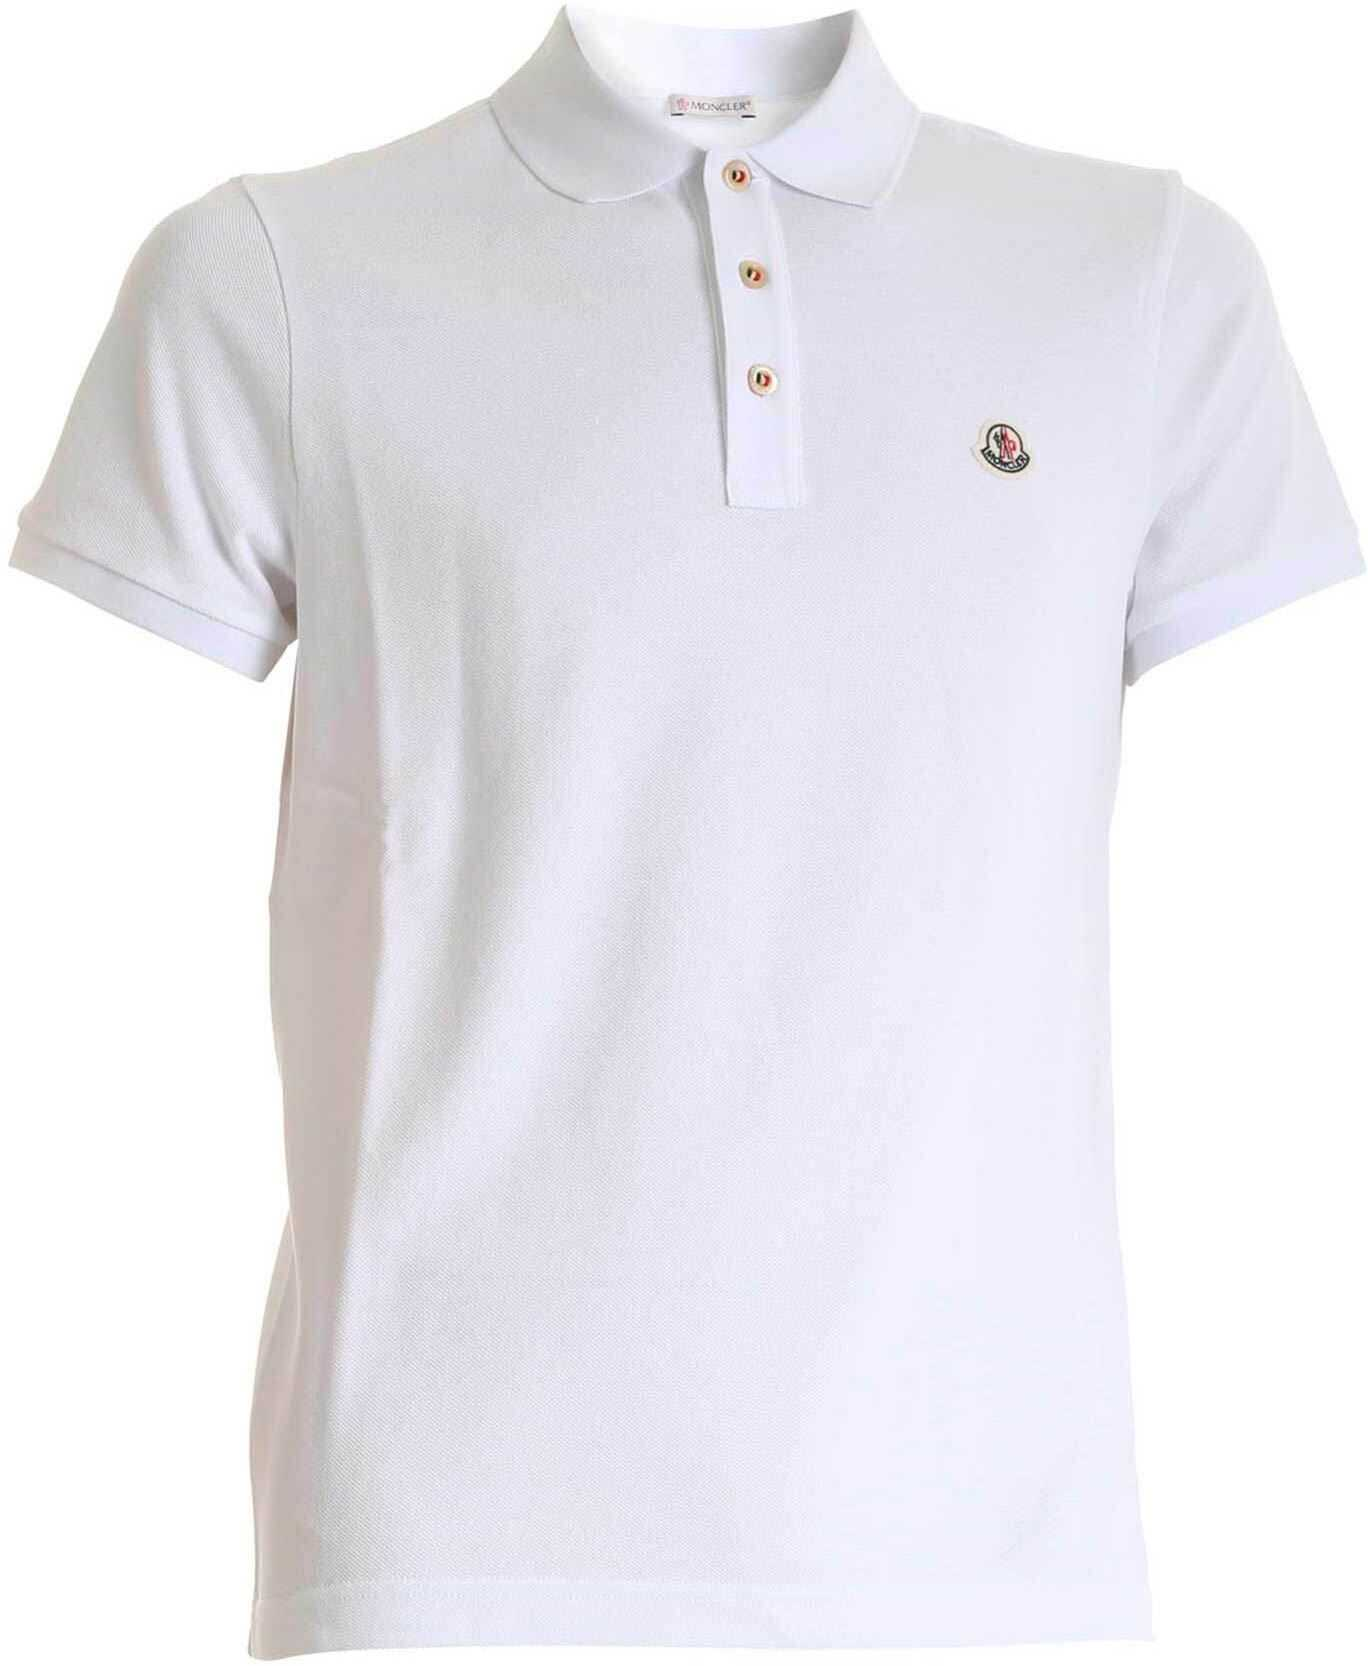 Moncler Polo Shirt In White With Logo Patch White imagine